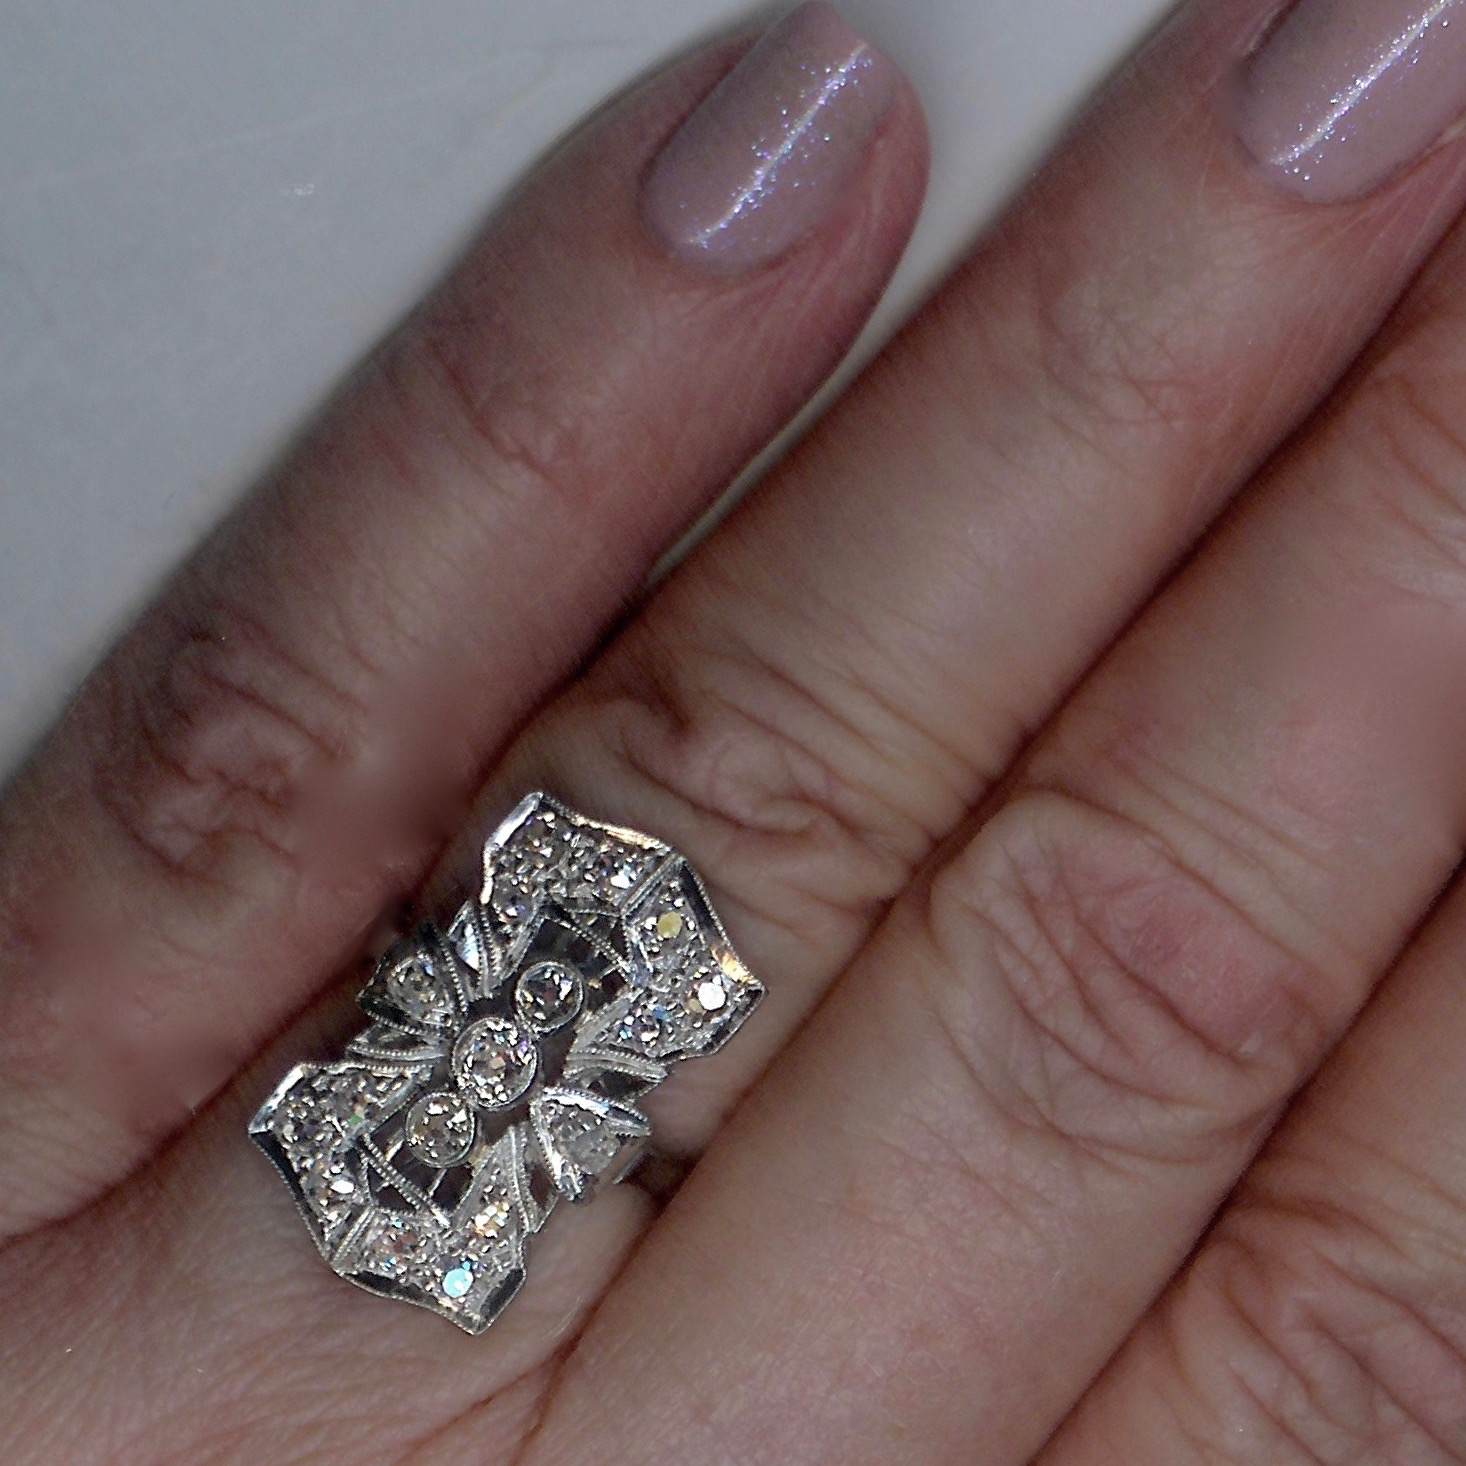 Delectable Art Deco Cluster Ring - Click Image to Close